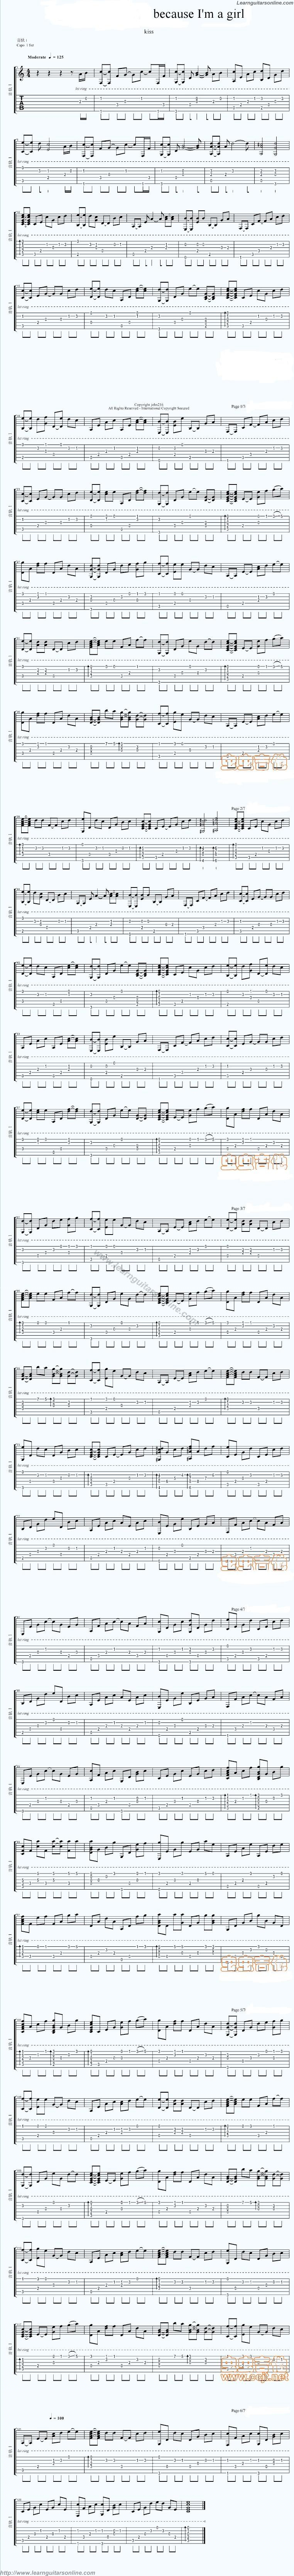 Because I'm A Girl Yeoja Inikka by Kiss Guitar Sheet Music Free